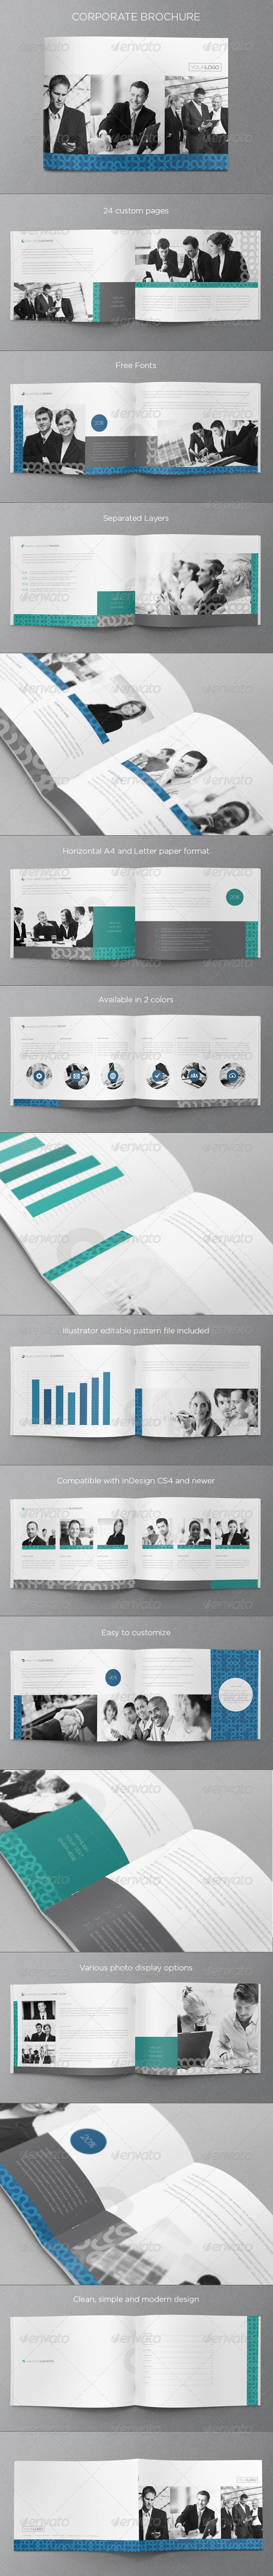 Corporate Business Brochure 2 - Brochures Print Templates